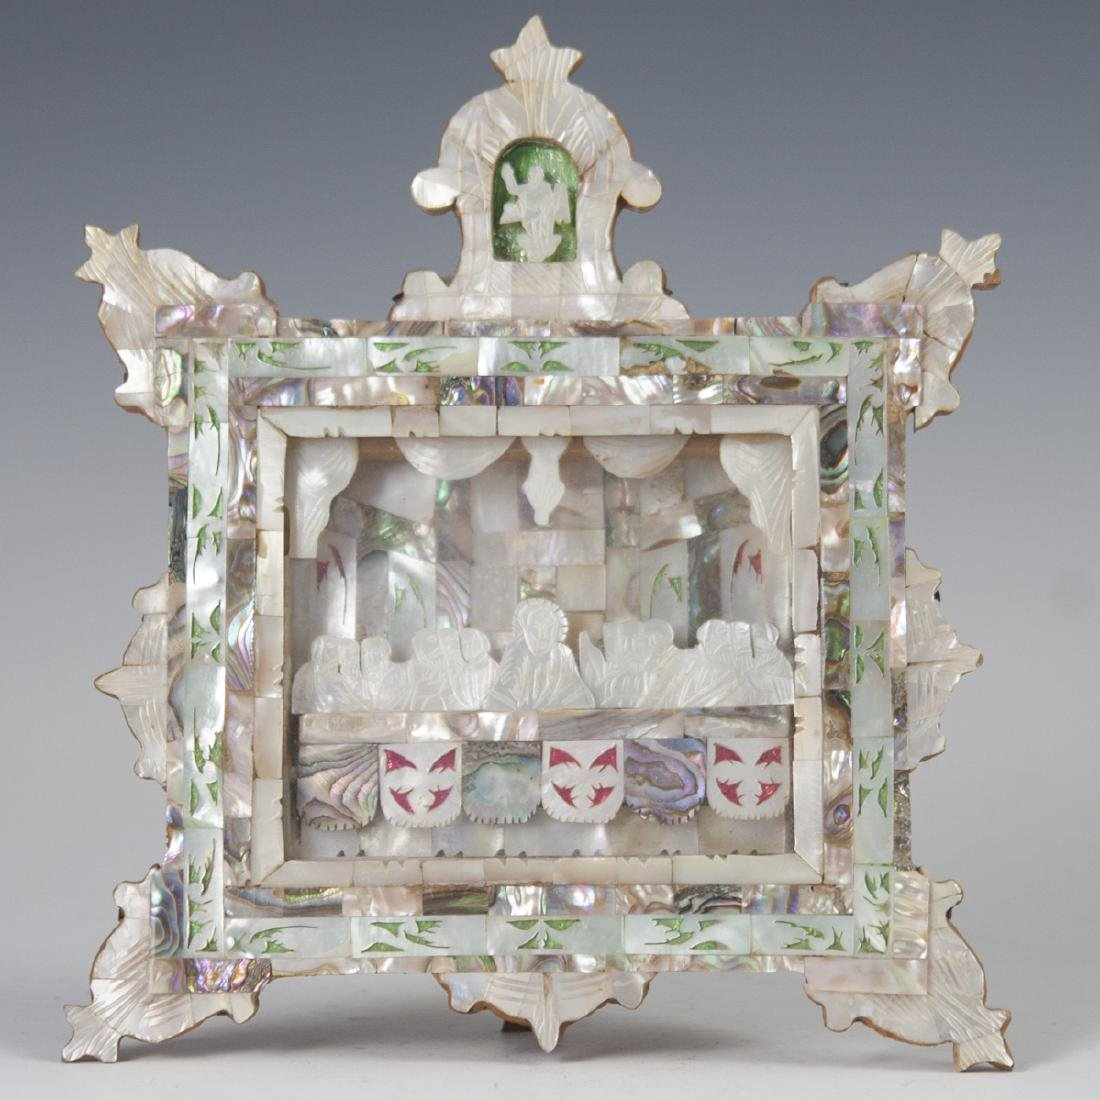 Tessellated Mother of Pearl Last Supper